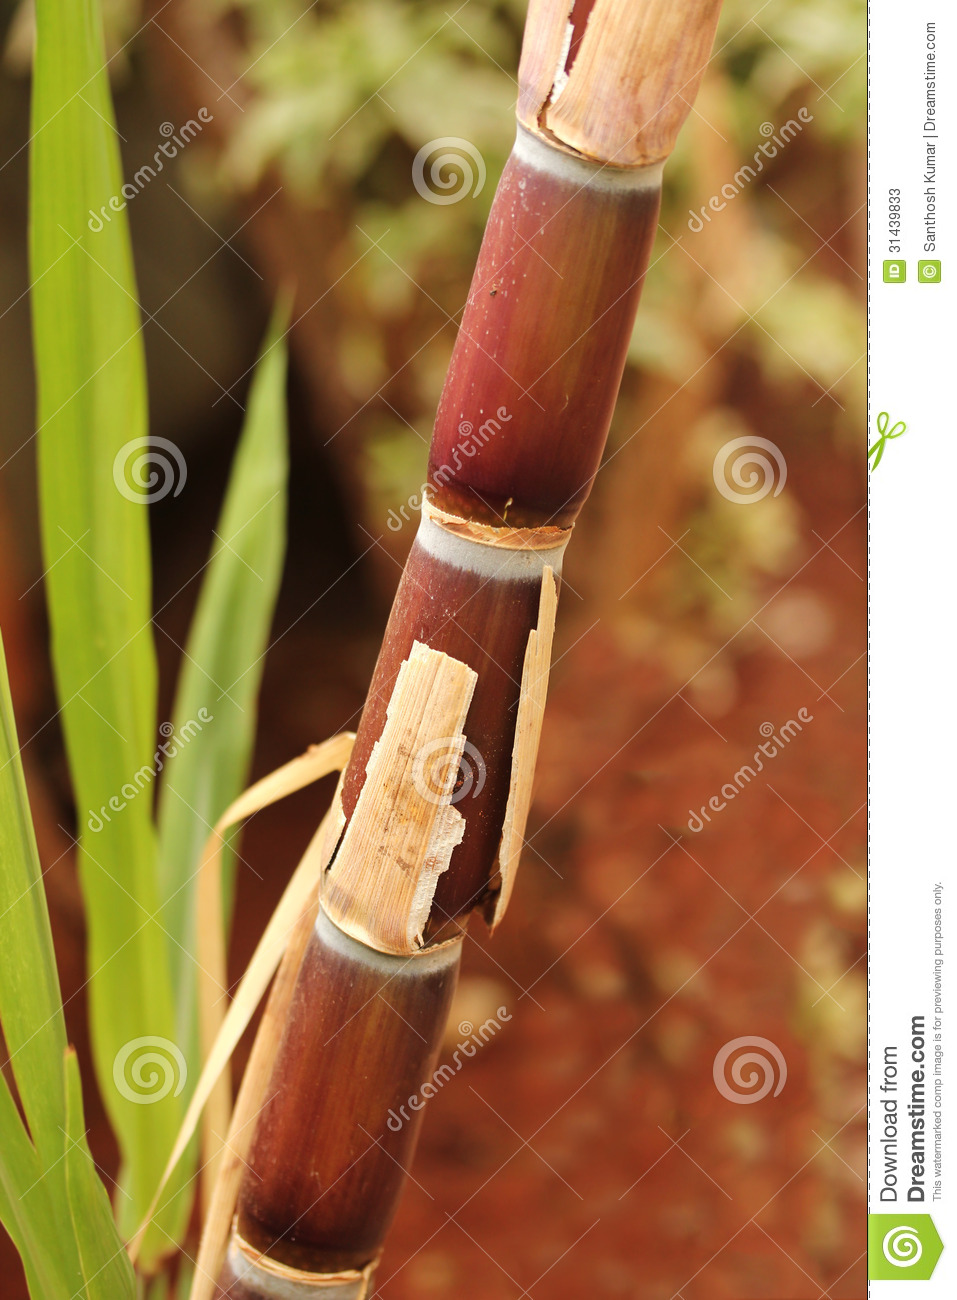 Sugarcane crop(stem) fully ripe ready for industrial extraction